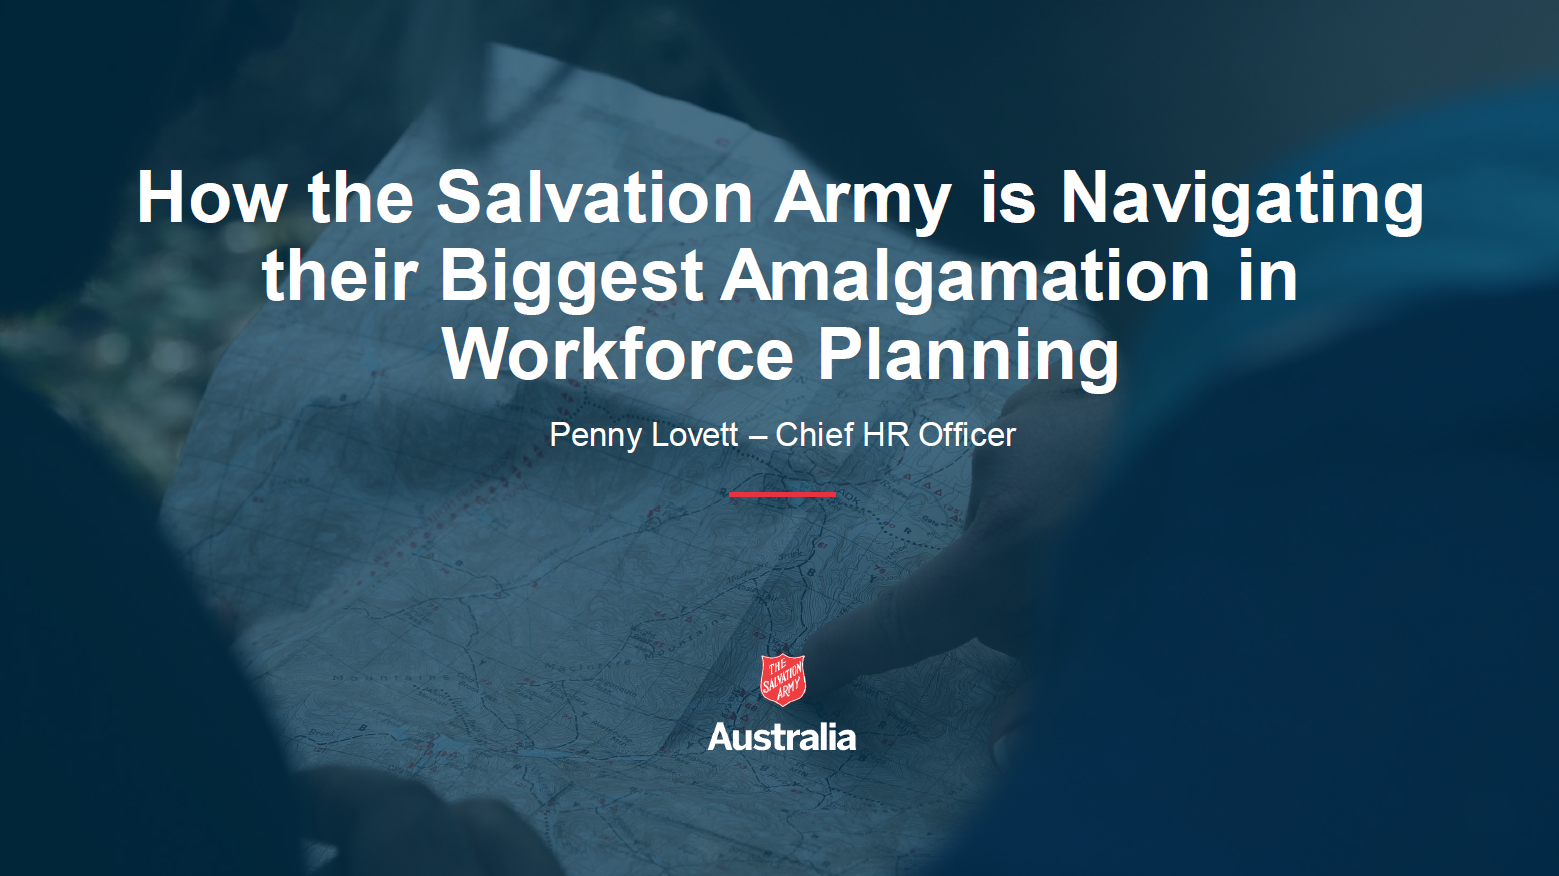 How The Salvation Army is Navigating their Biggest Amalgamation Through Re-Evaluating their Workforce Planning Strategy